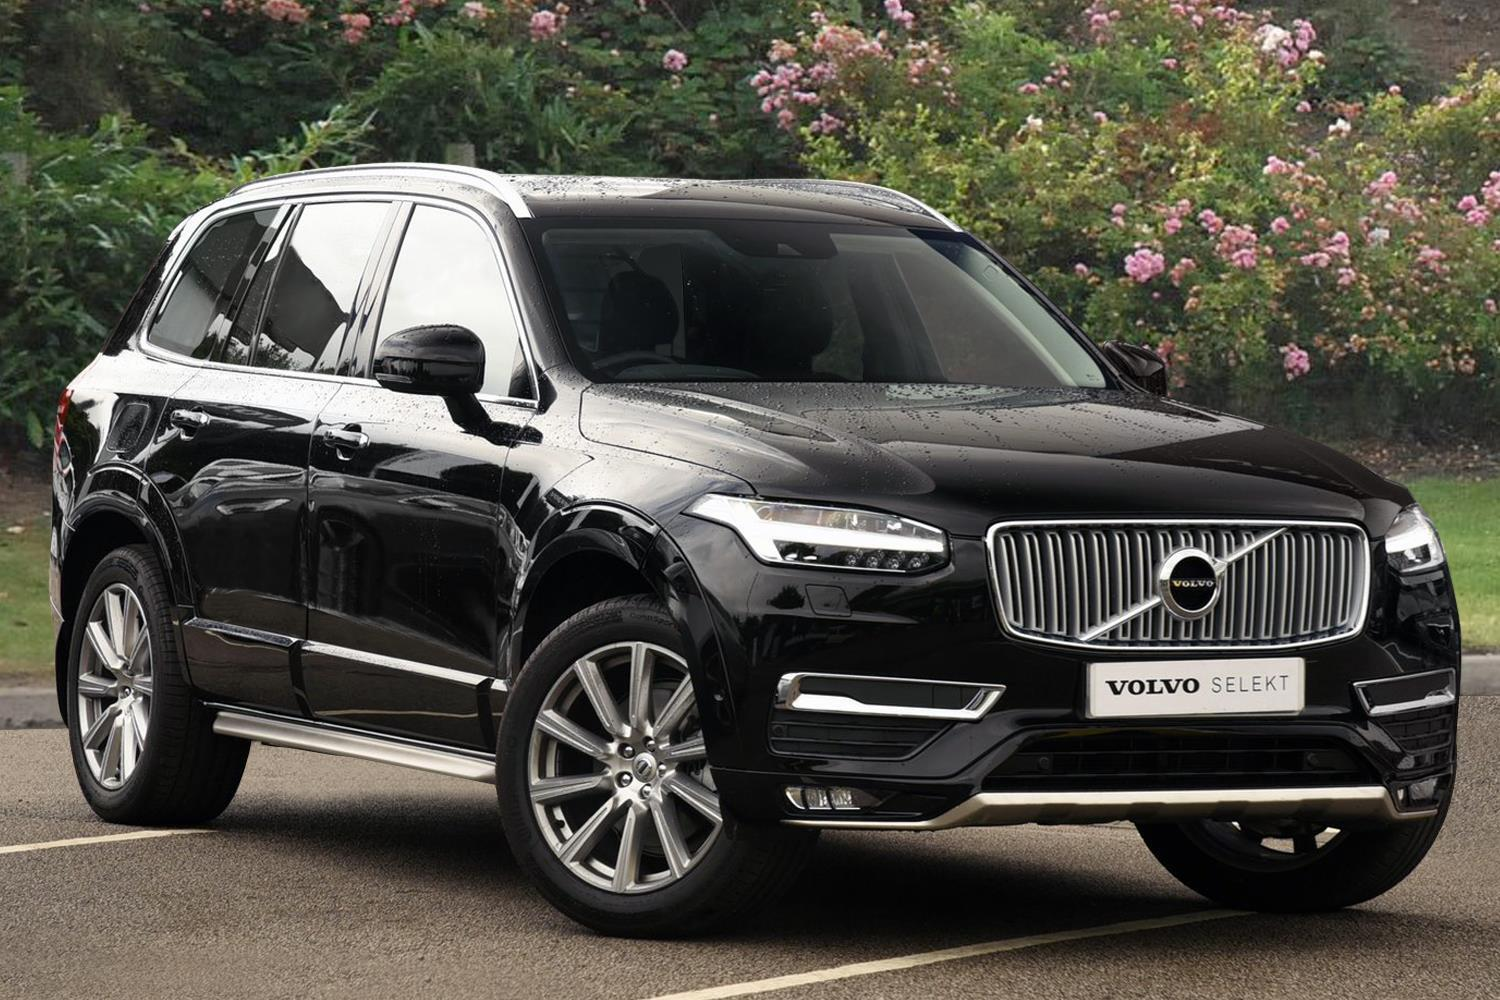 used volvo xc90 2 0 d5 powerpulse inscription 5dr awd geartronic diesel estate for sale. Black Bedroom Furniture Sets. Home Design Ideas